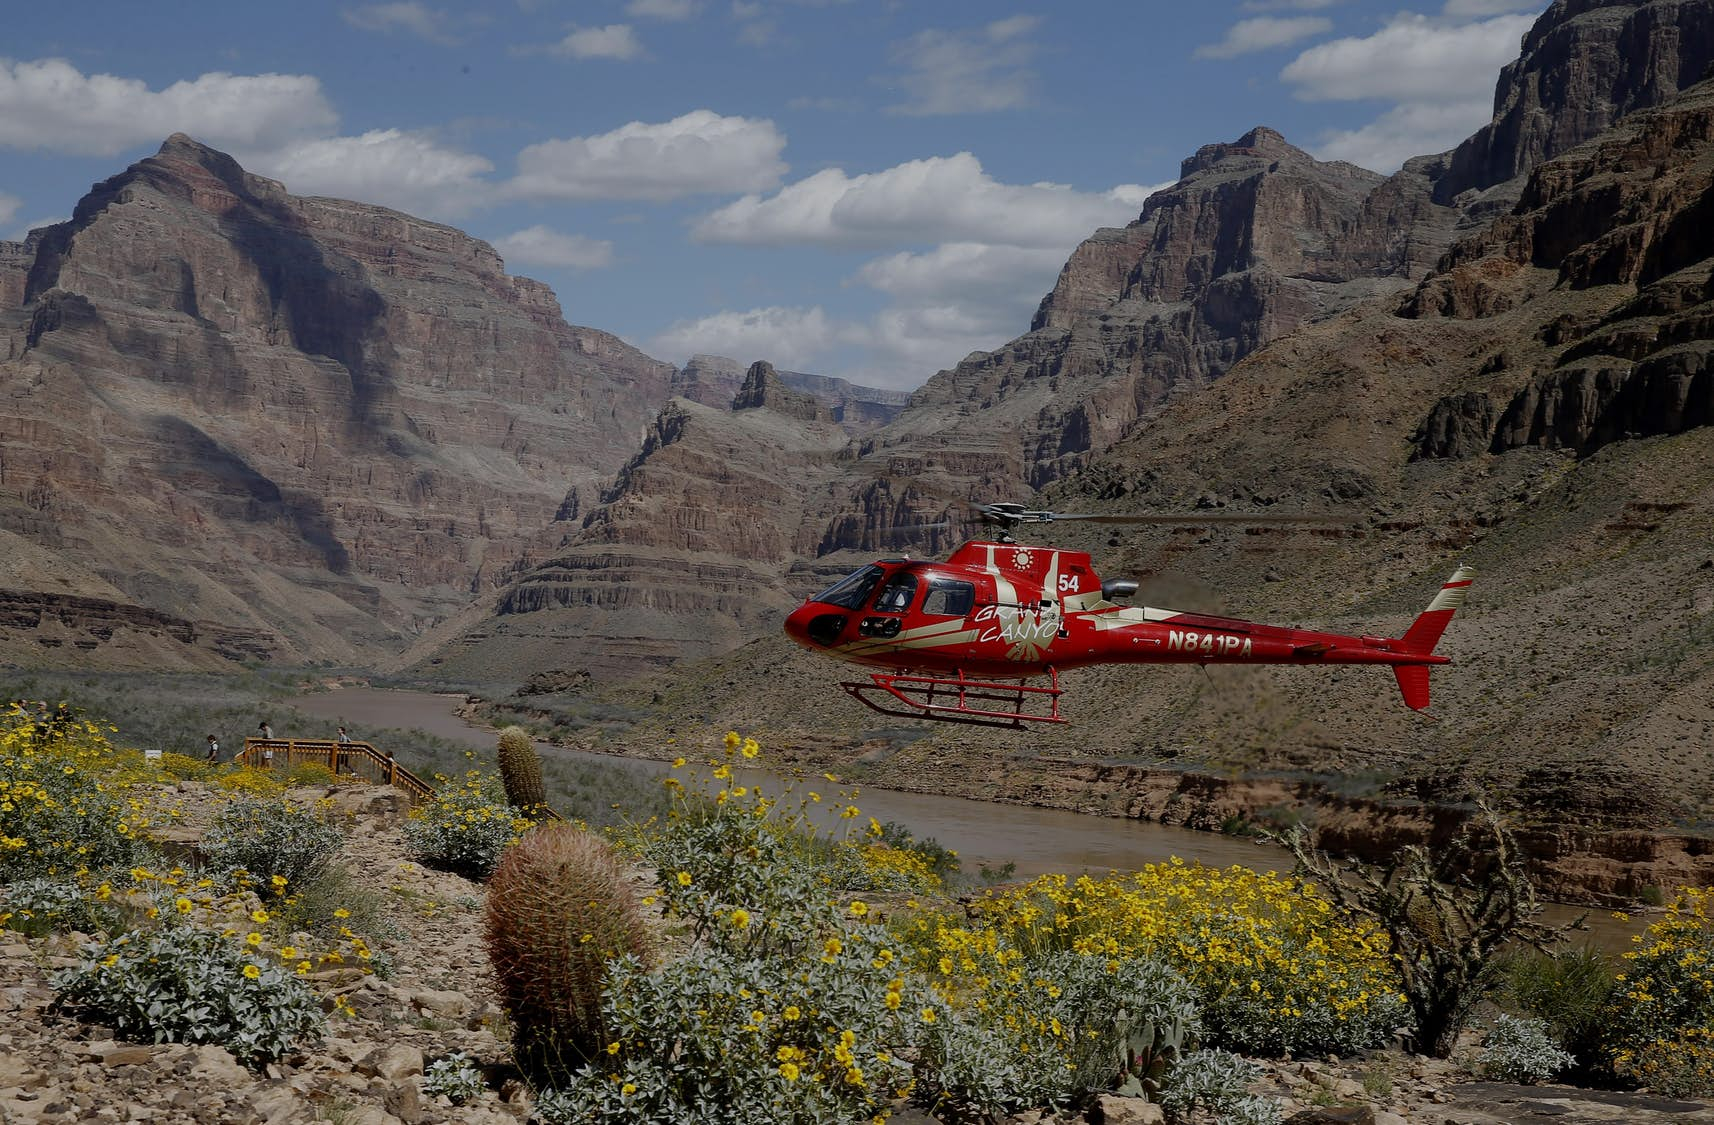 The top 4 Grand Canyon experiences you should book now